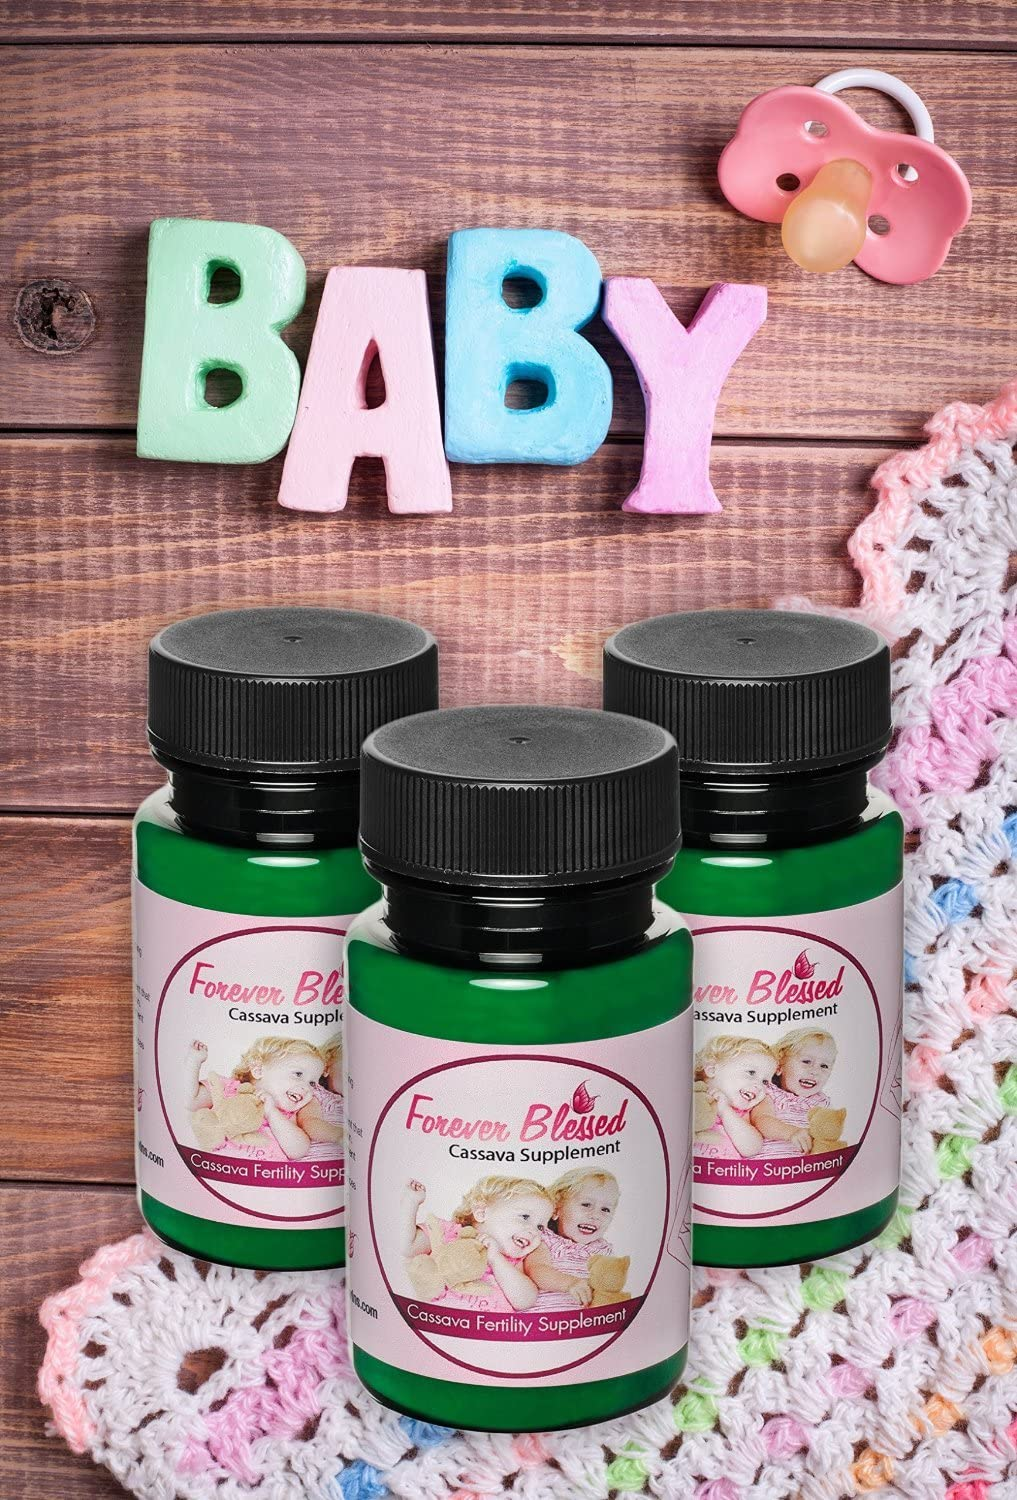 3 Month Supply Organic Cassava Root – Fertility Supplement for Twins – Certified Strongest Product on The Market Vitamin for a Natural Pregnancy